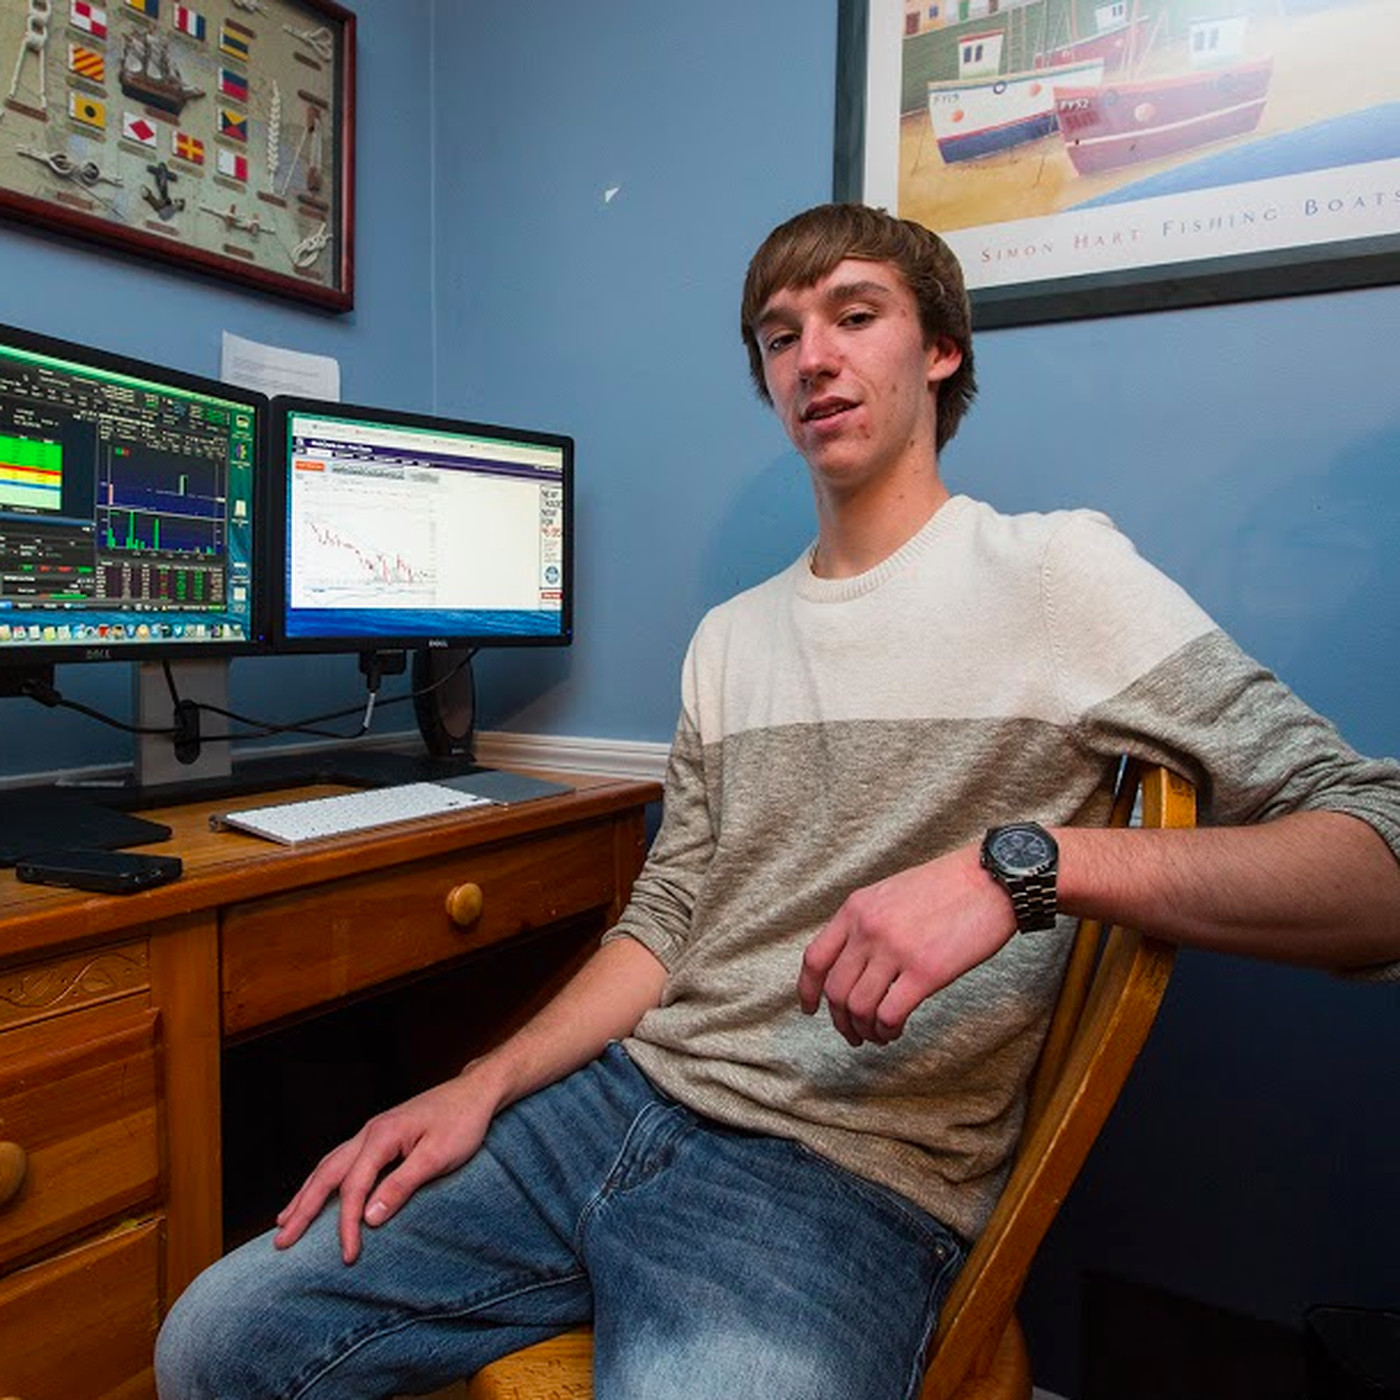 Don T Try This Meet The High Schooler Who Made 300k Trading Penny Stocks Under His Desk The Verge